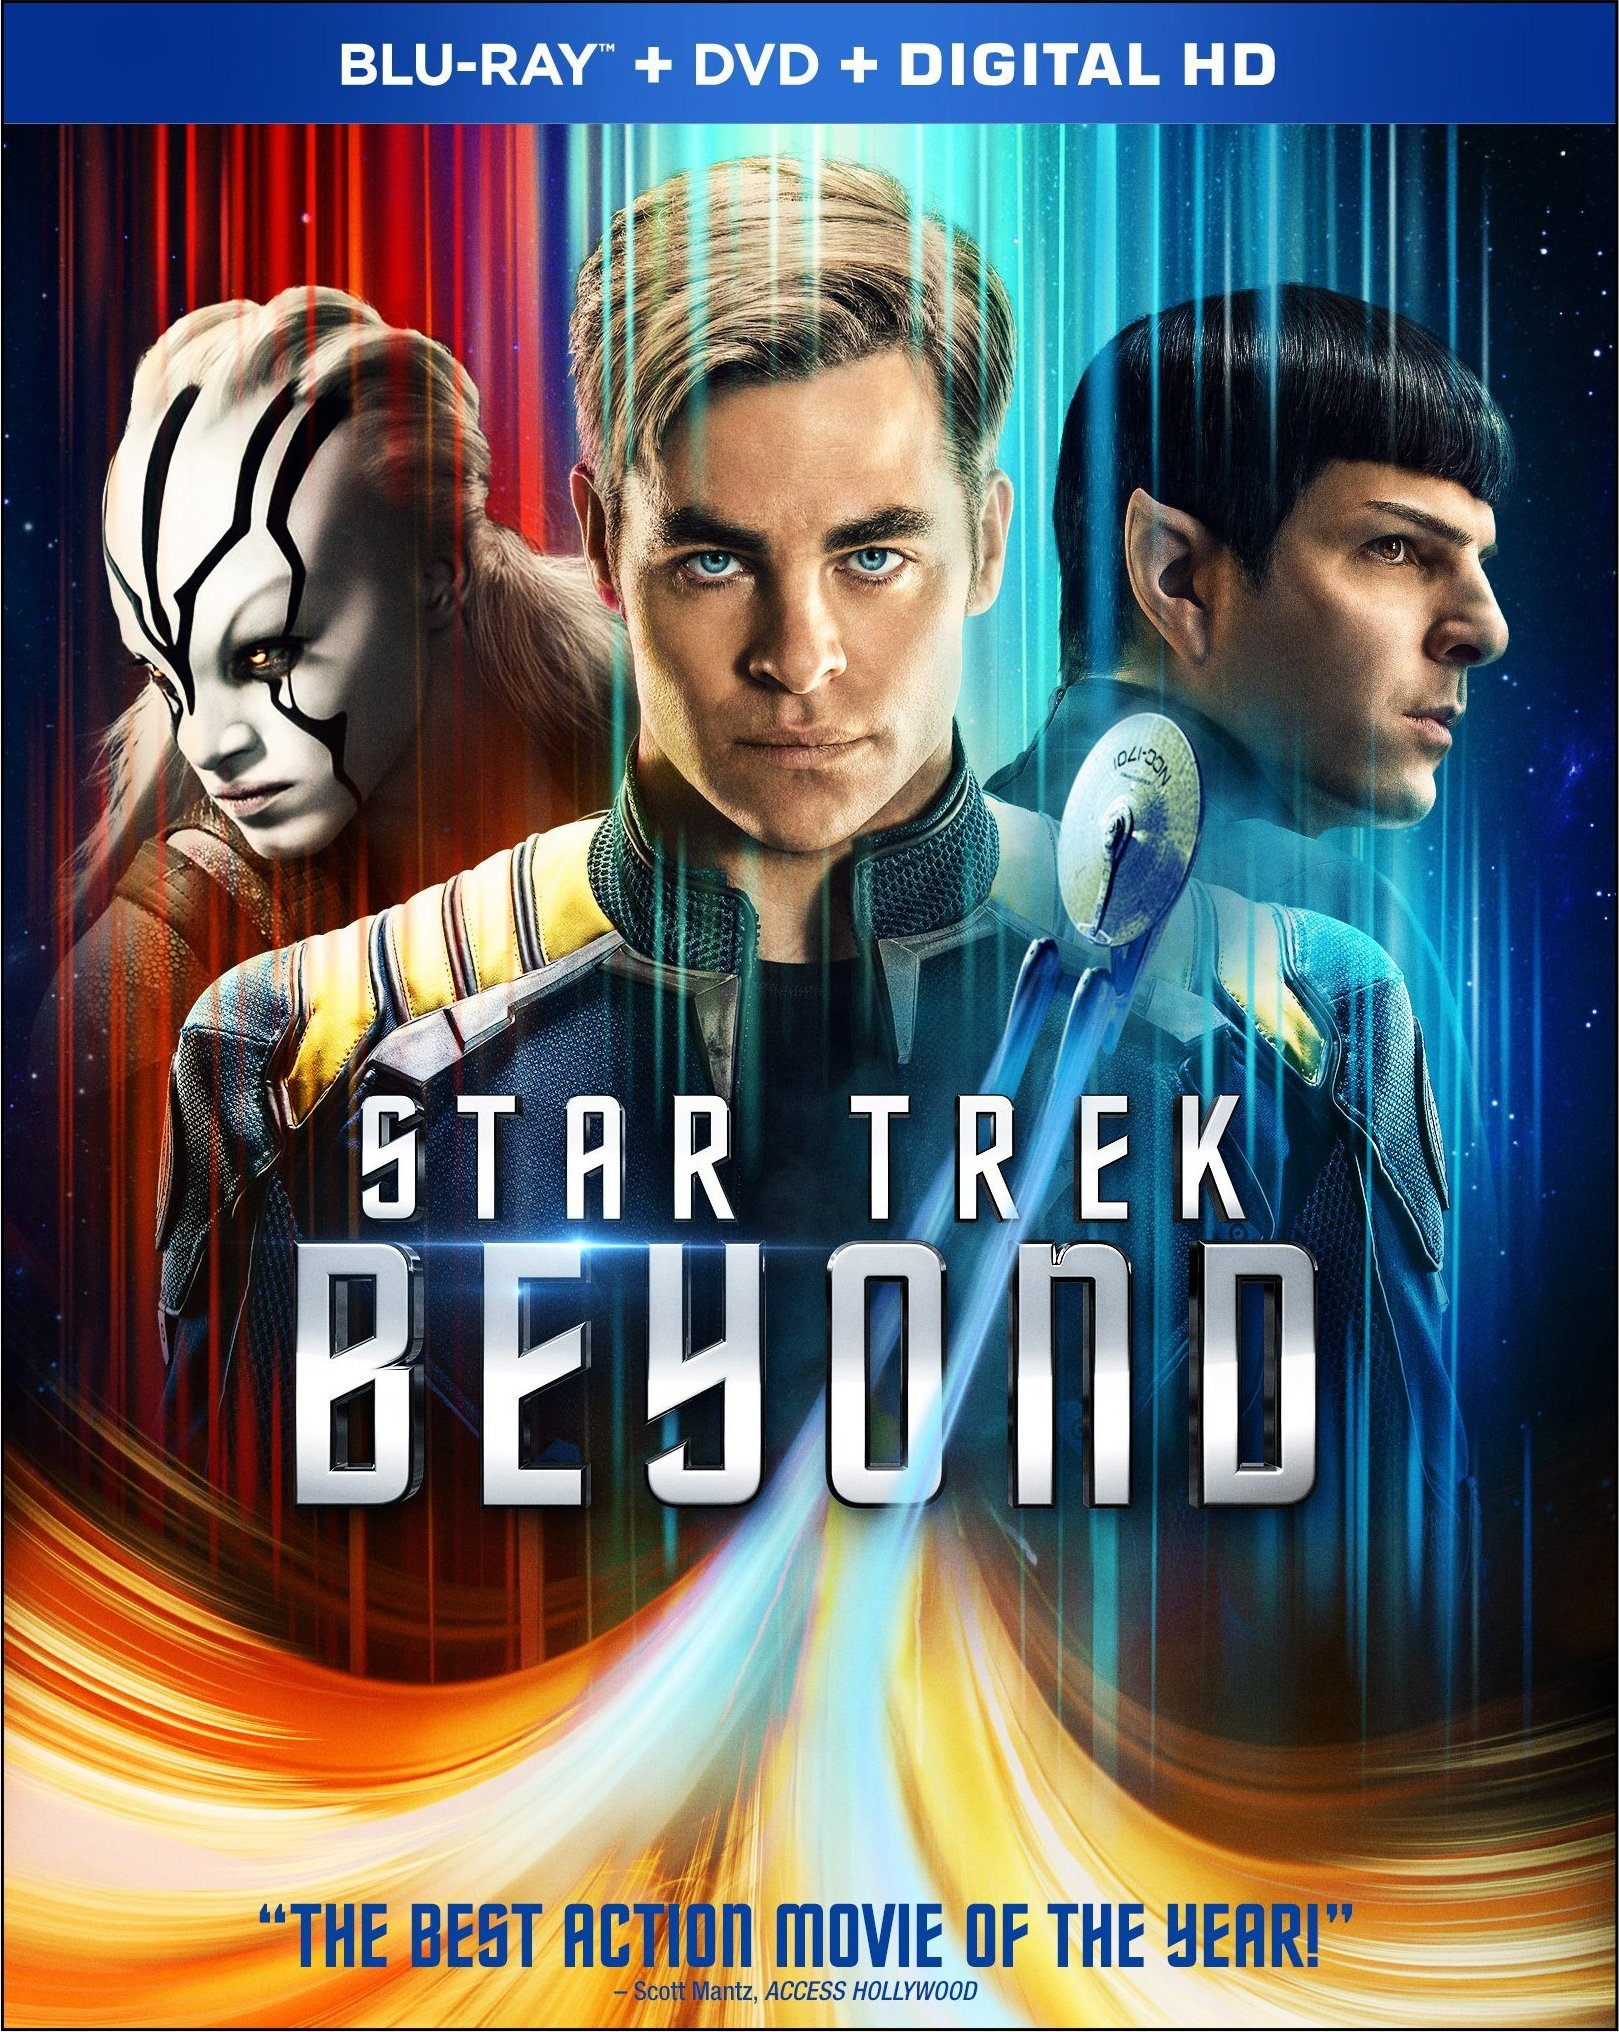 Star Trek Beyond (2016) poster image